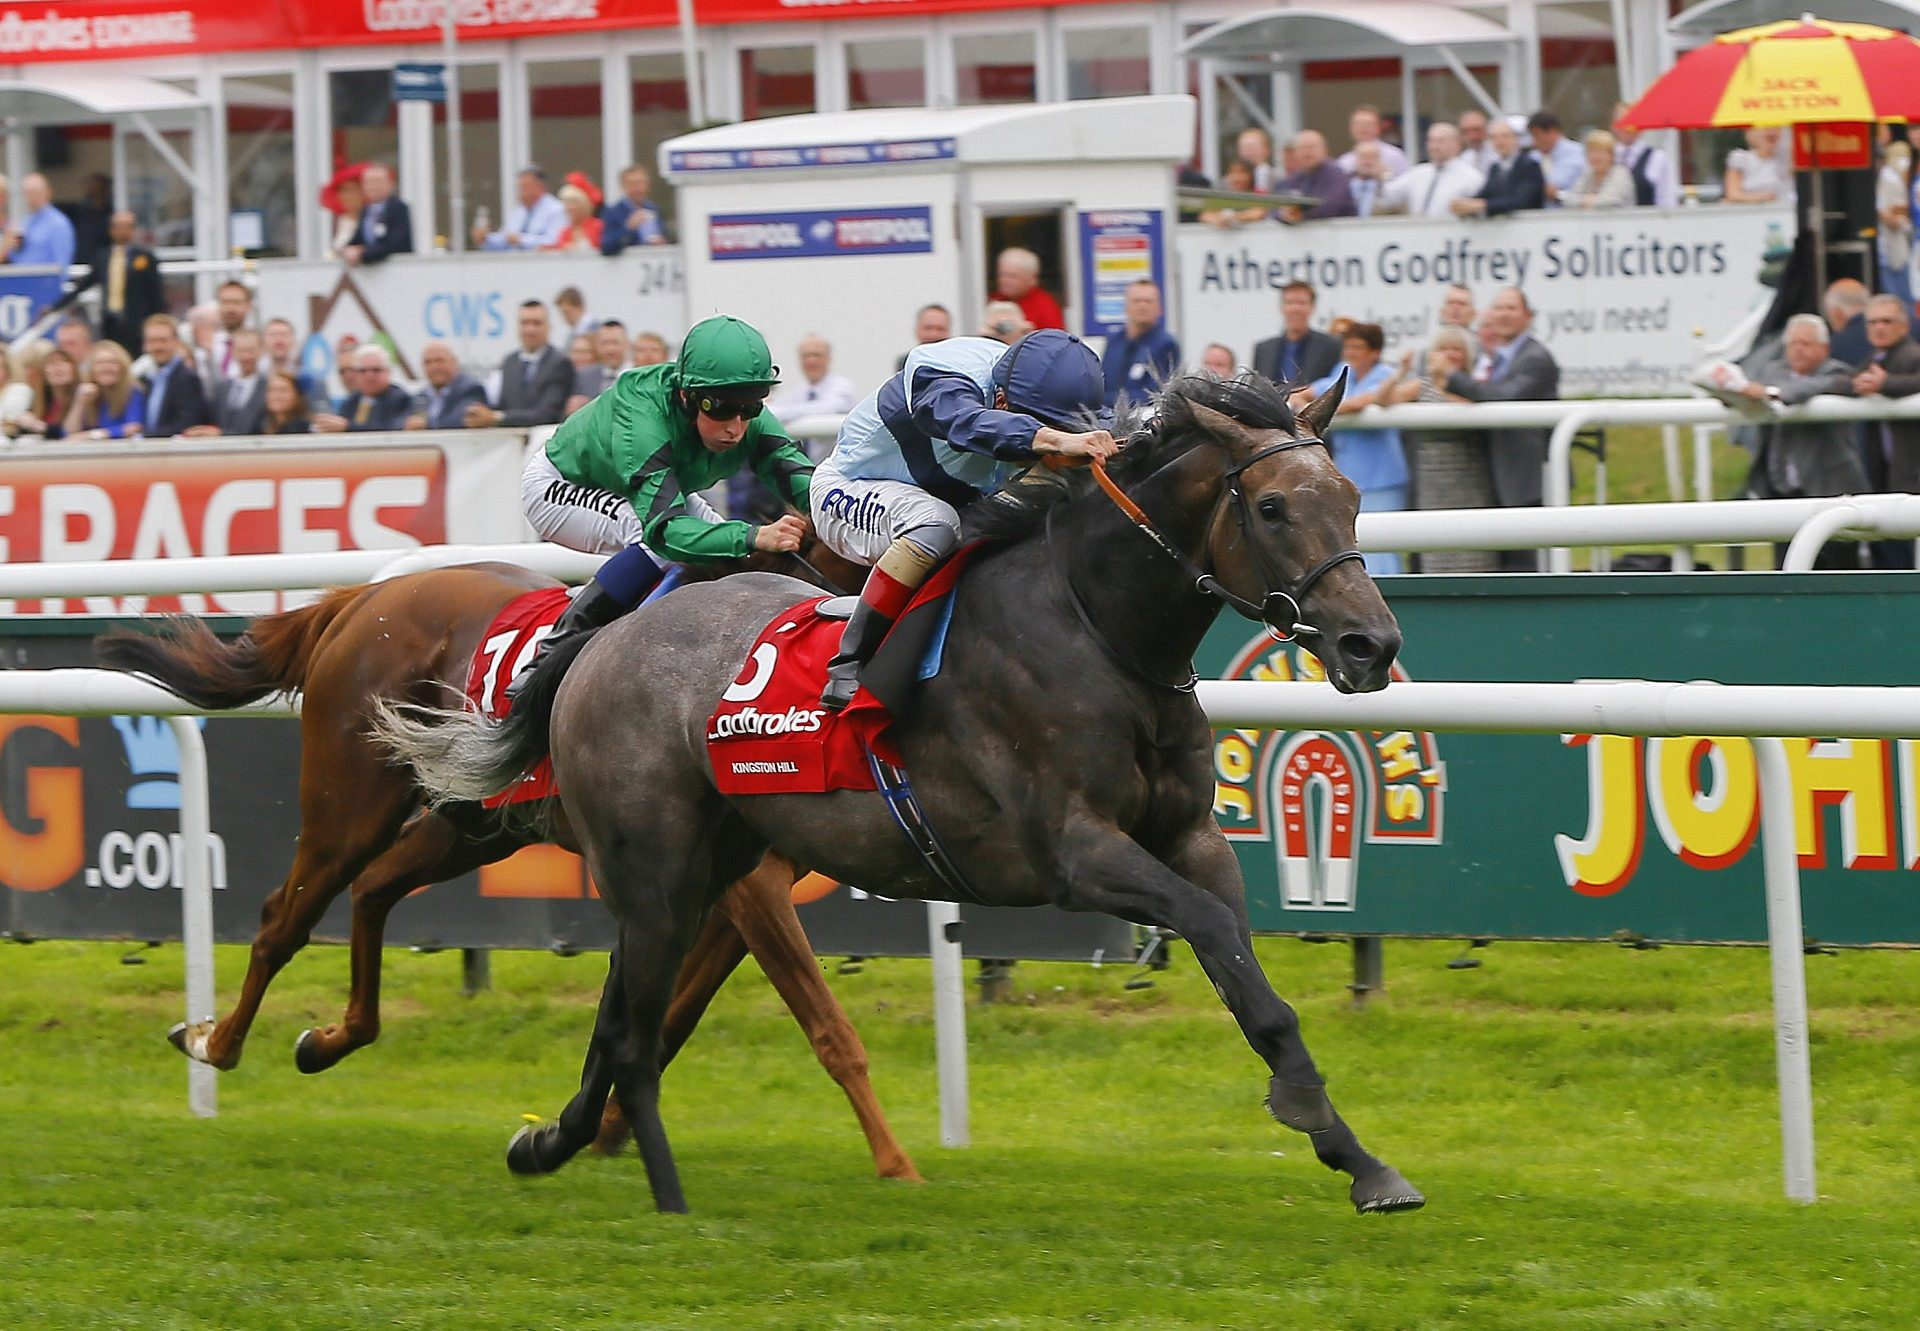 Kingston Hill (Mastecraftsman) Winning The G1 St Leger At Doncaster